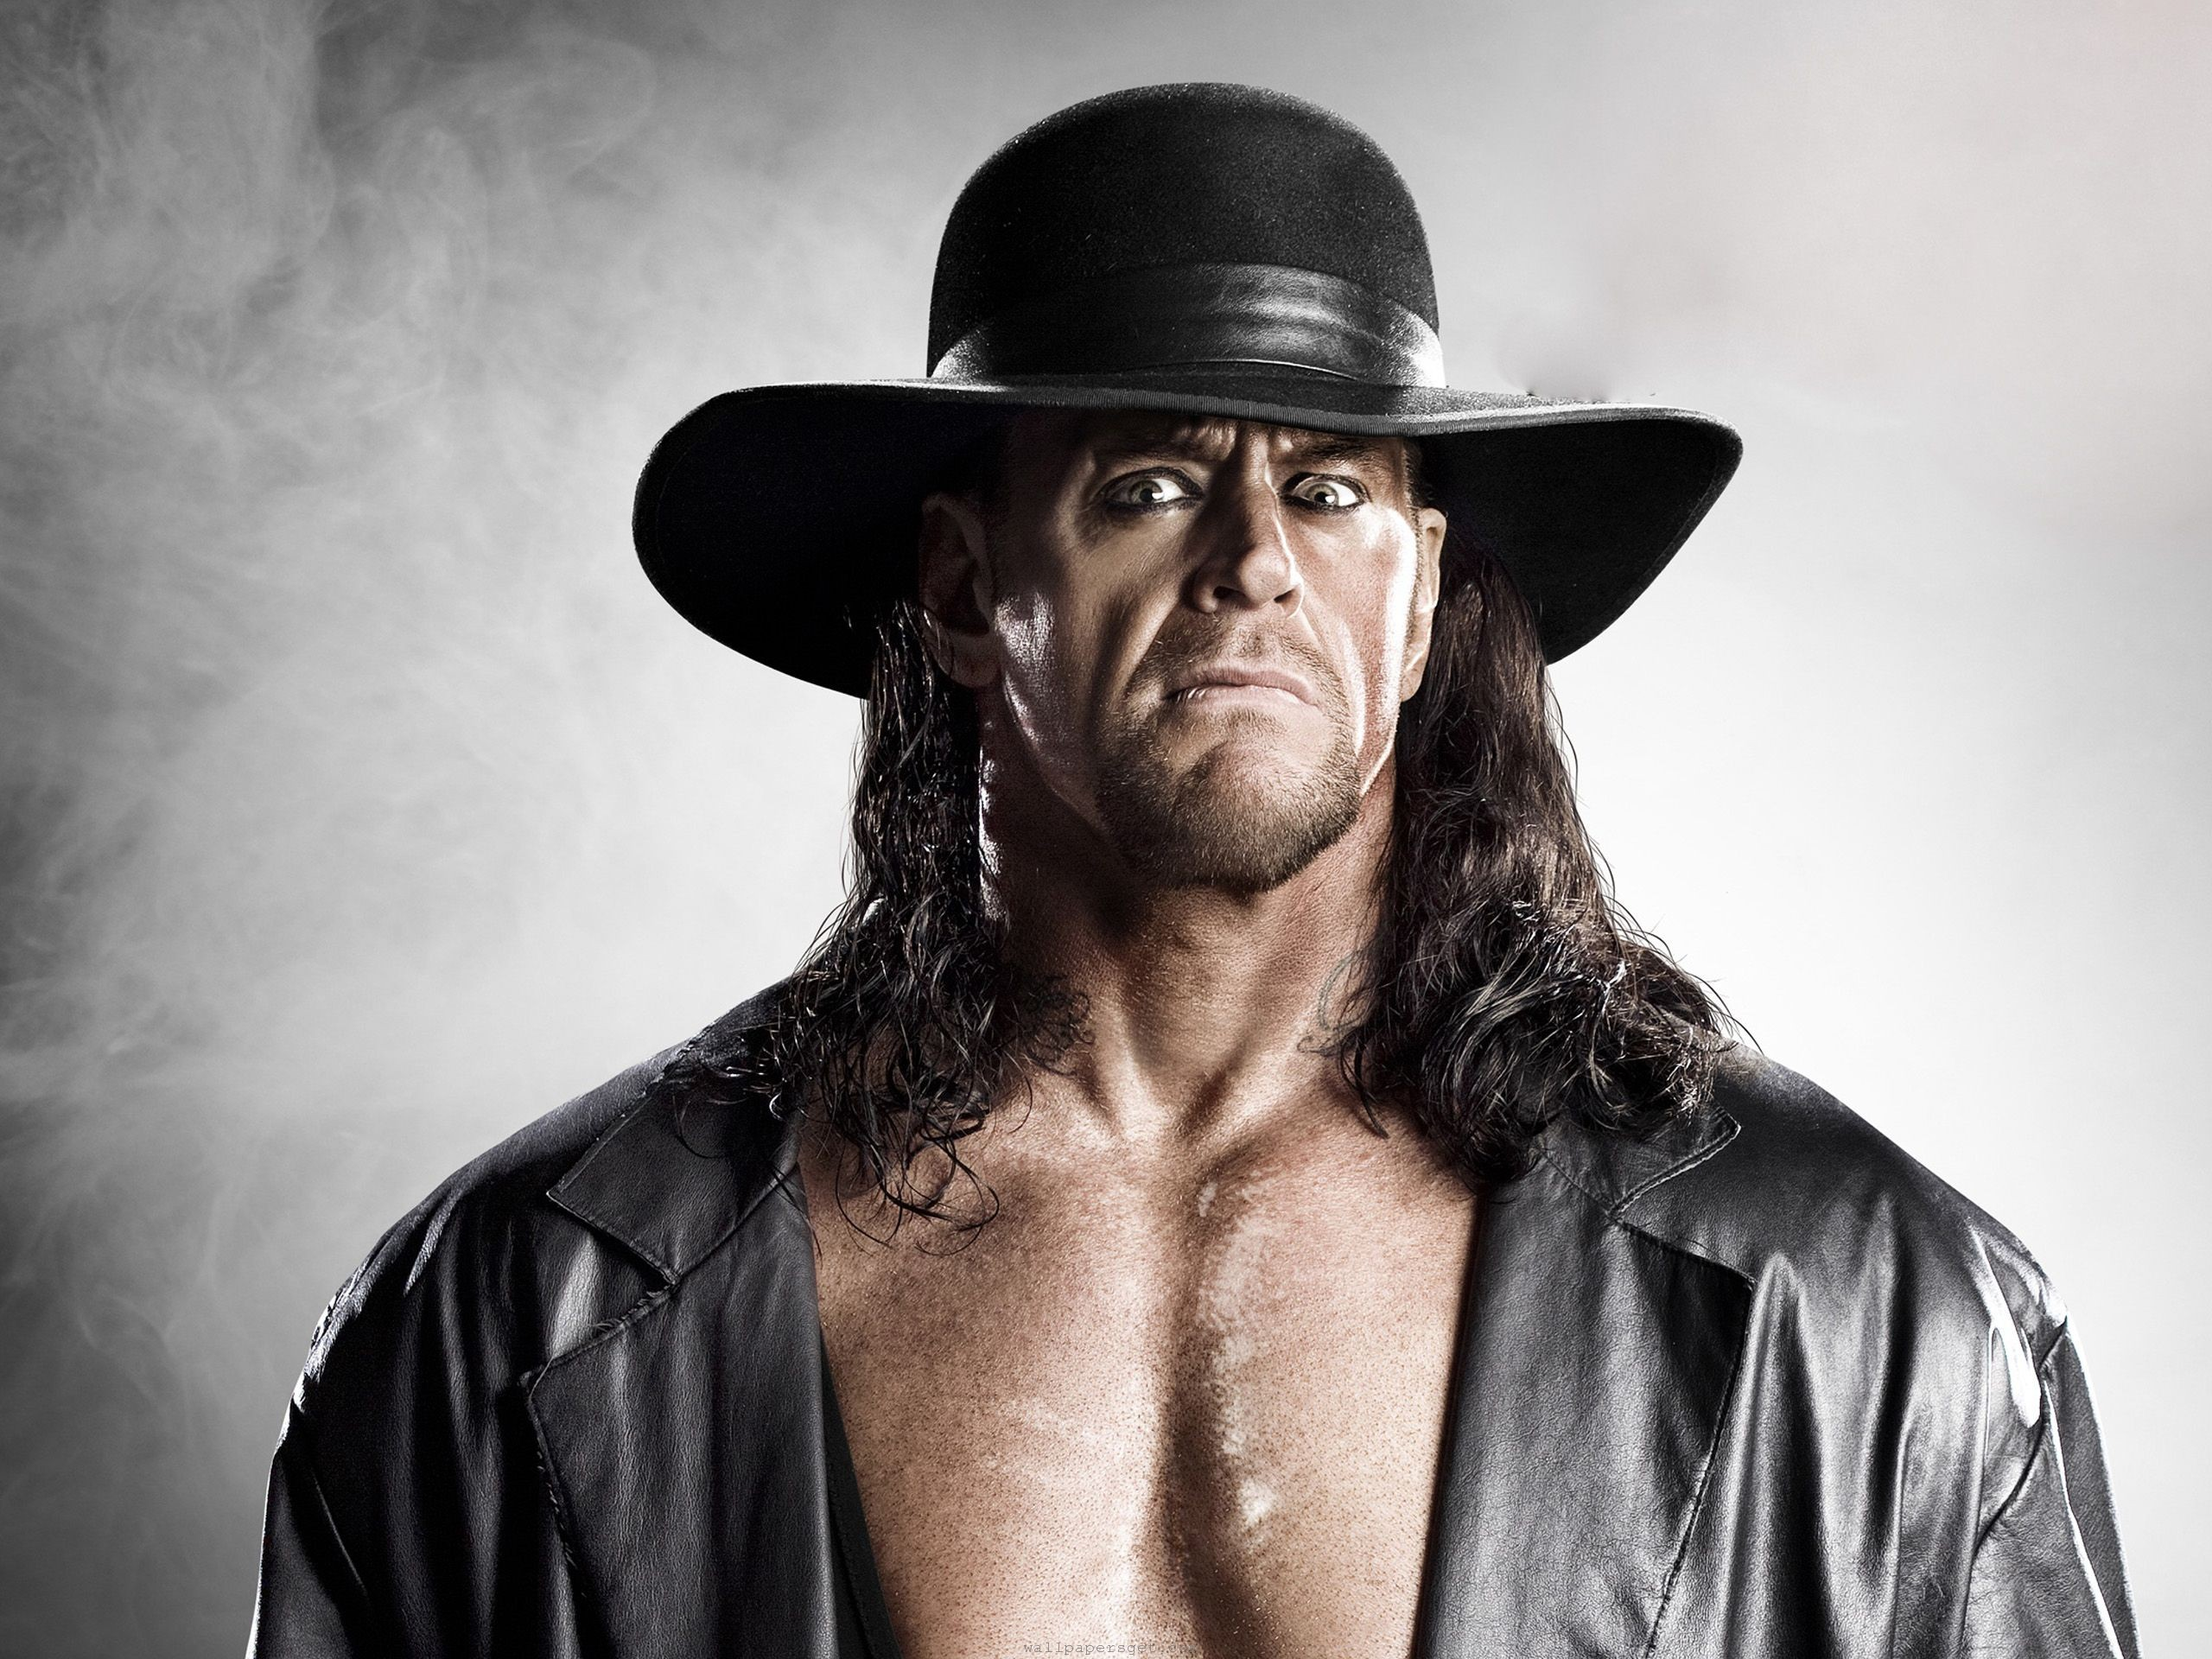 the-undertaker-2013-hd-wallpaper.jpeg